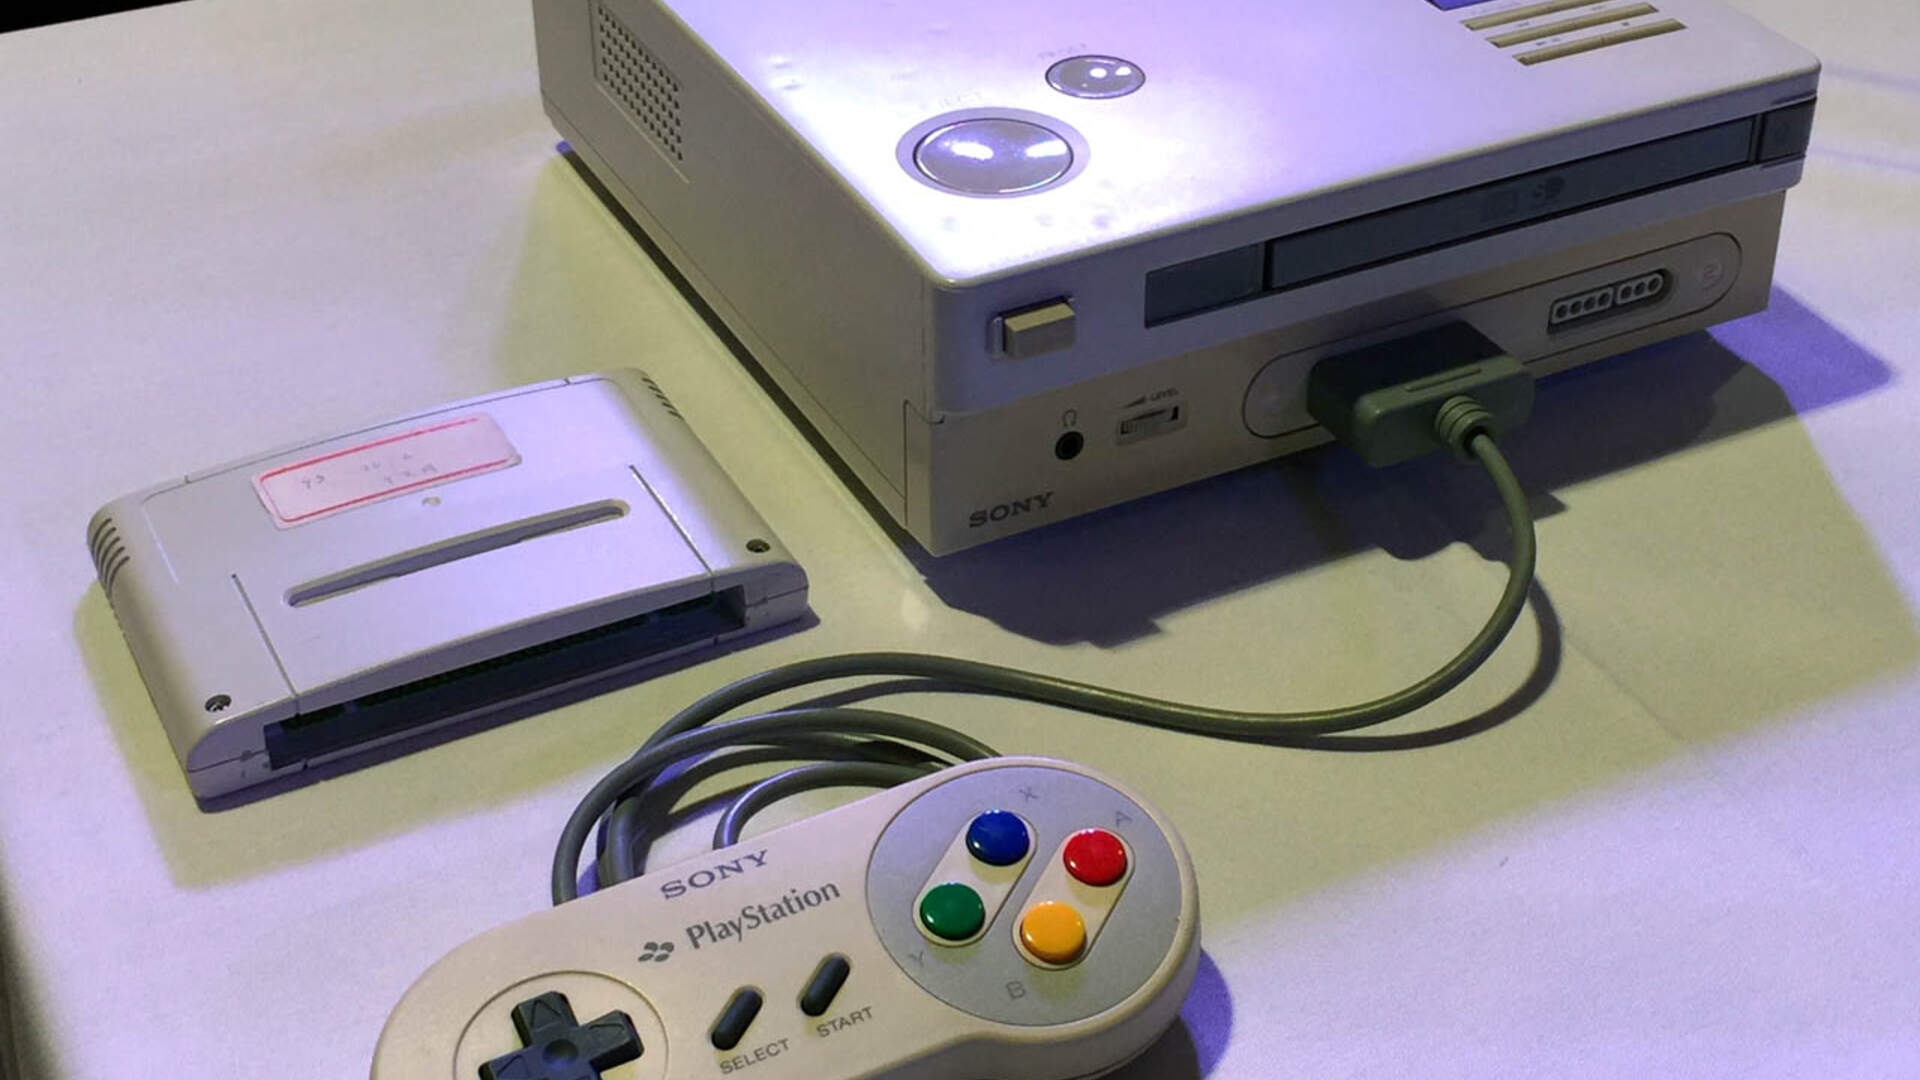 Early Bidding War for the Nintendo PlayStation Has Pushed the Price Up to $350,000